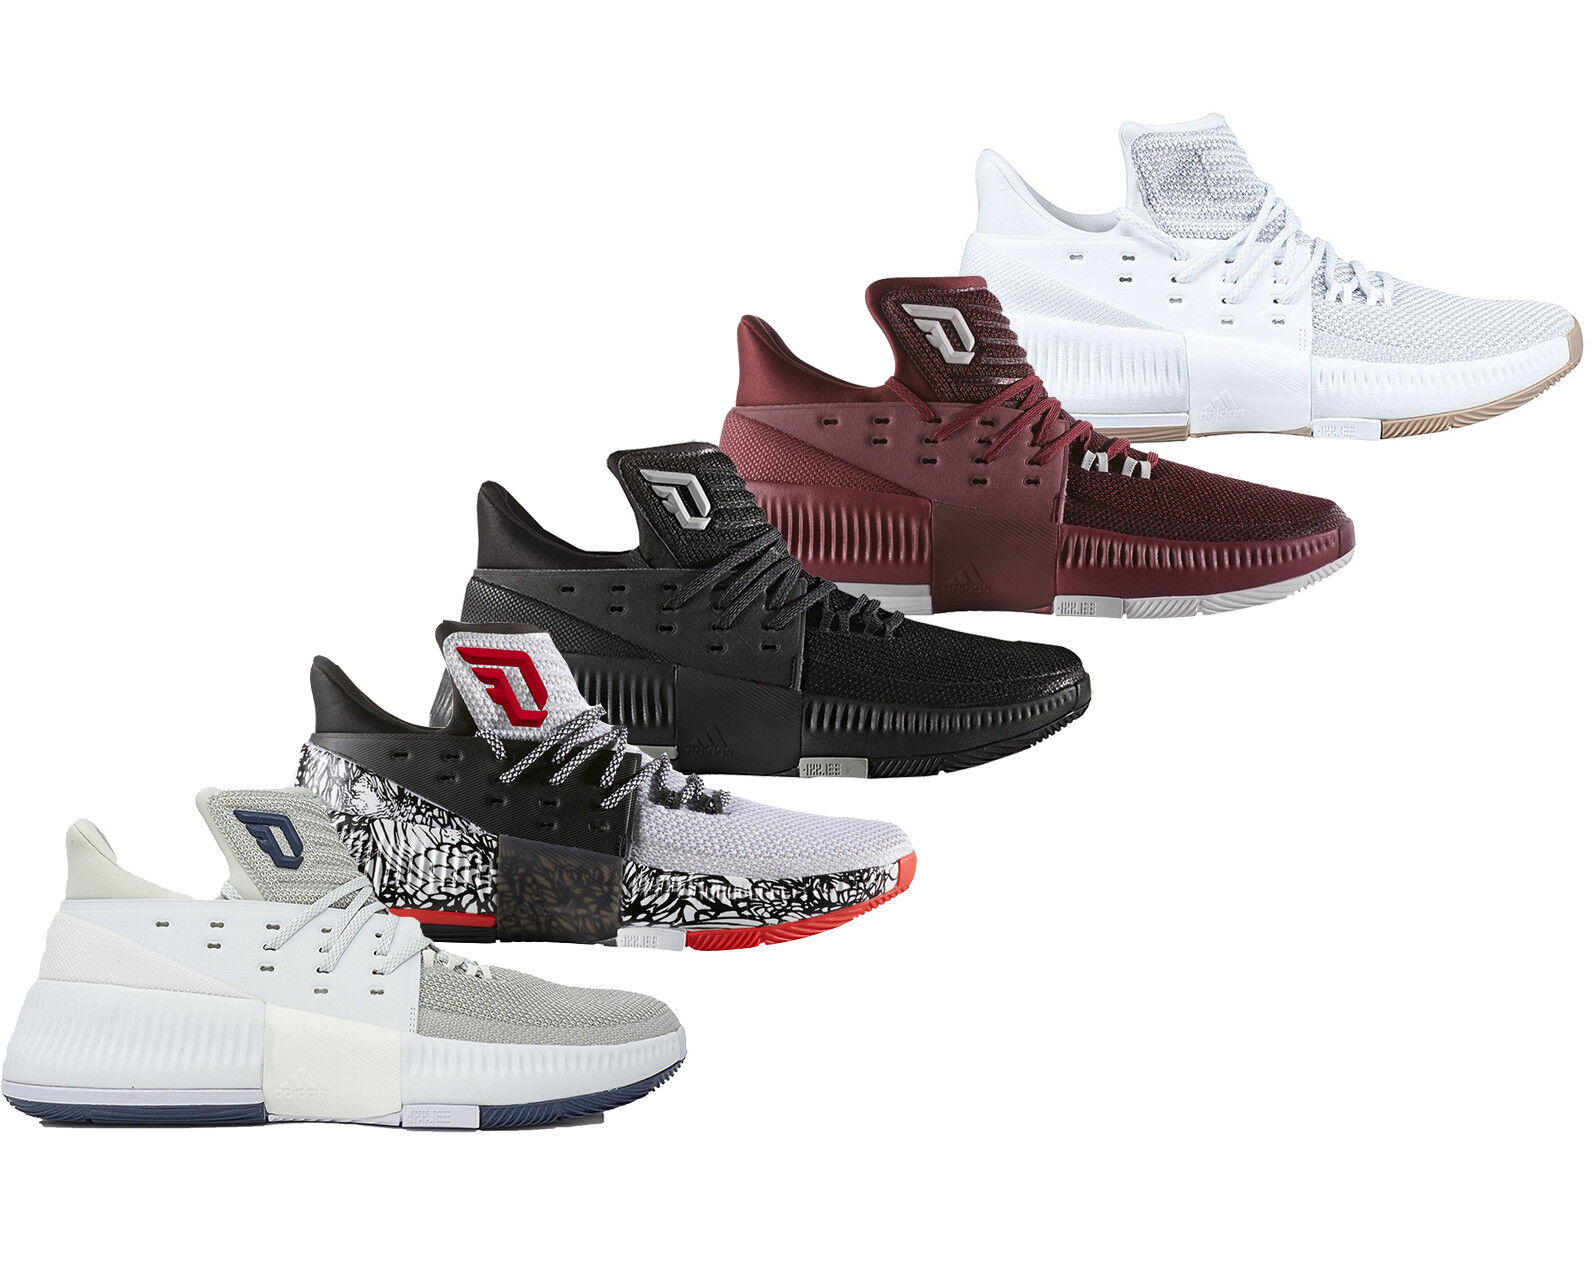 f1c27dcd5af6c Adidas Dame 3 D Lillard 3 Basketball shoes Athletic Sneakers NEW ...